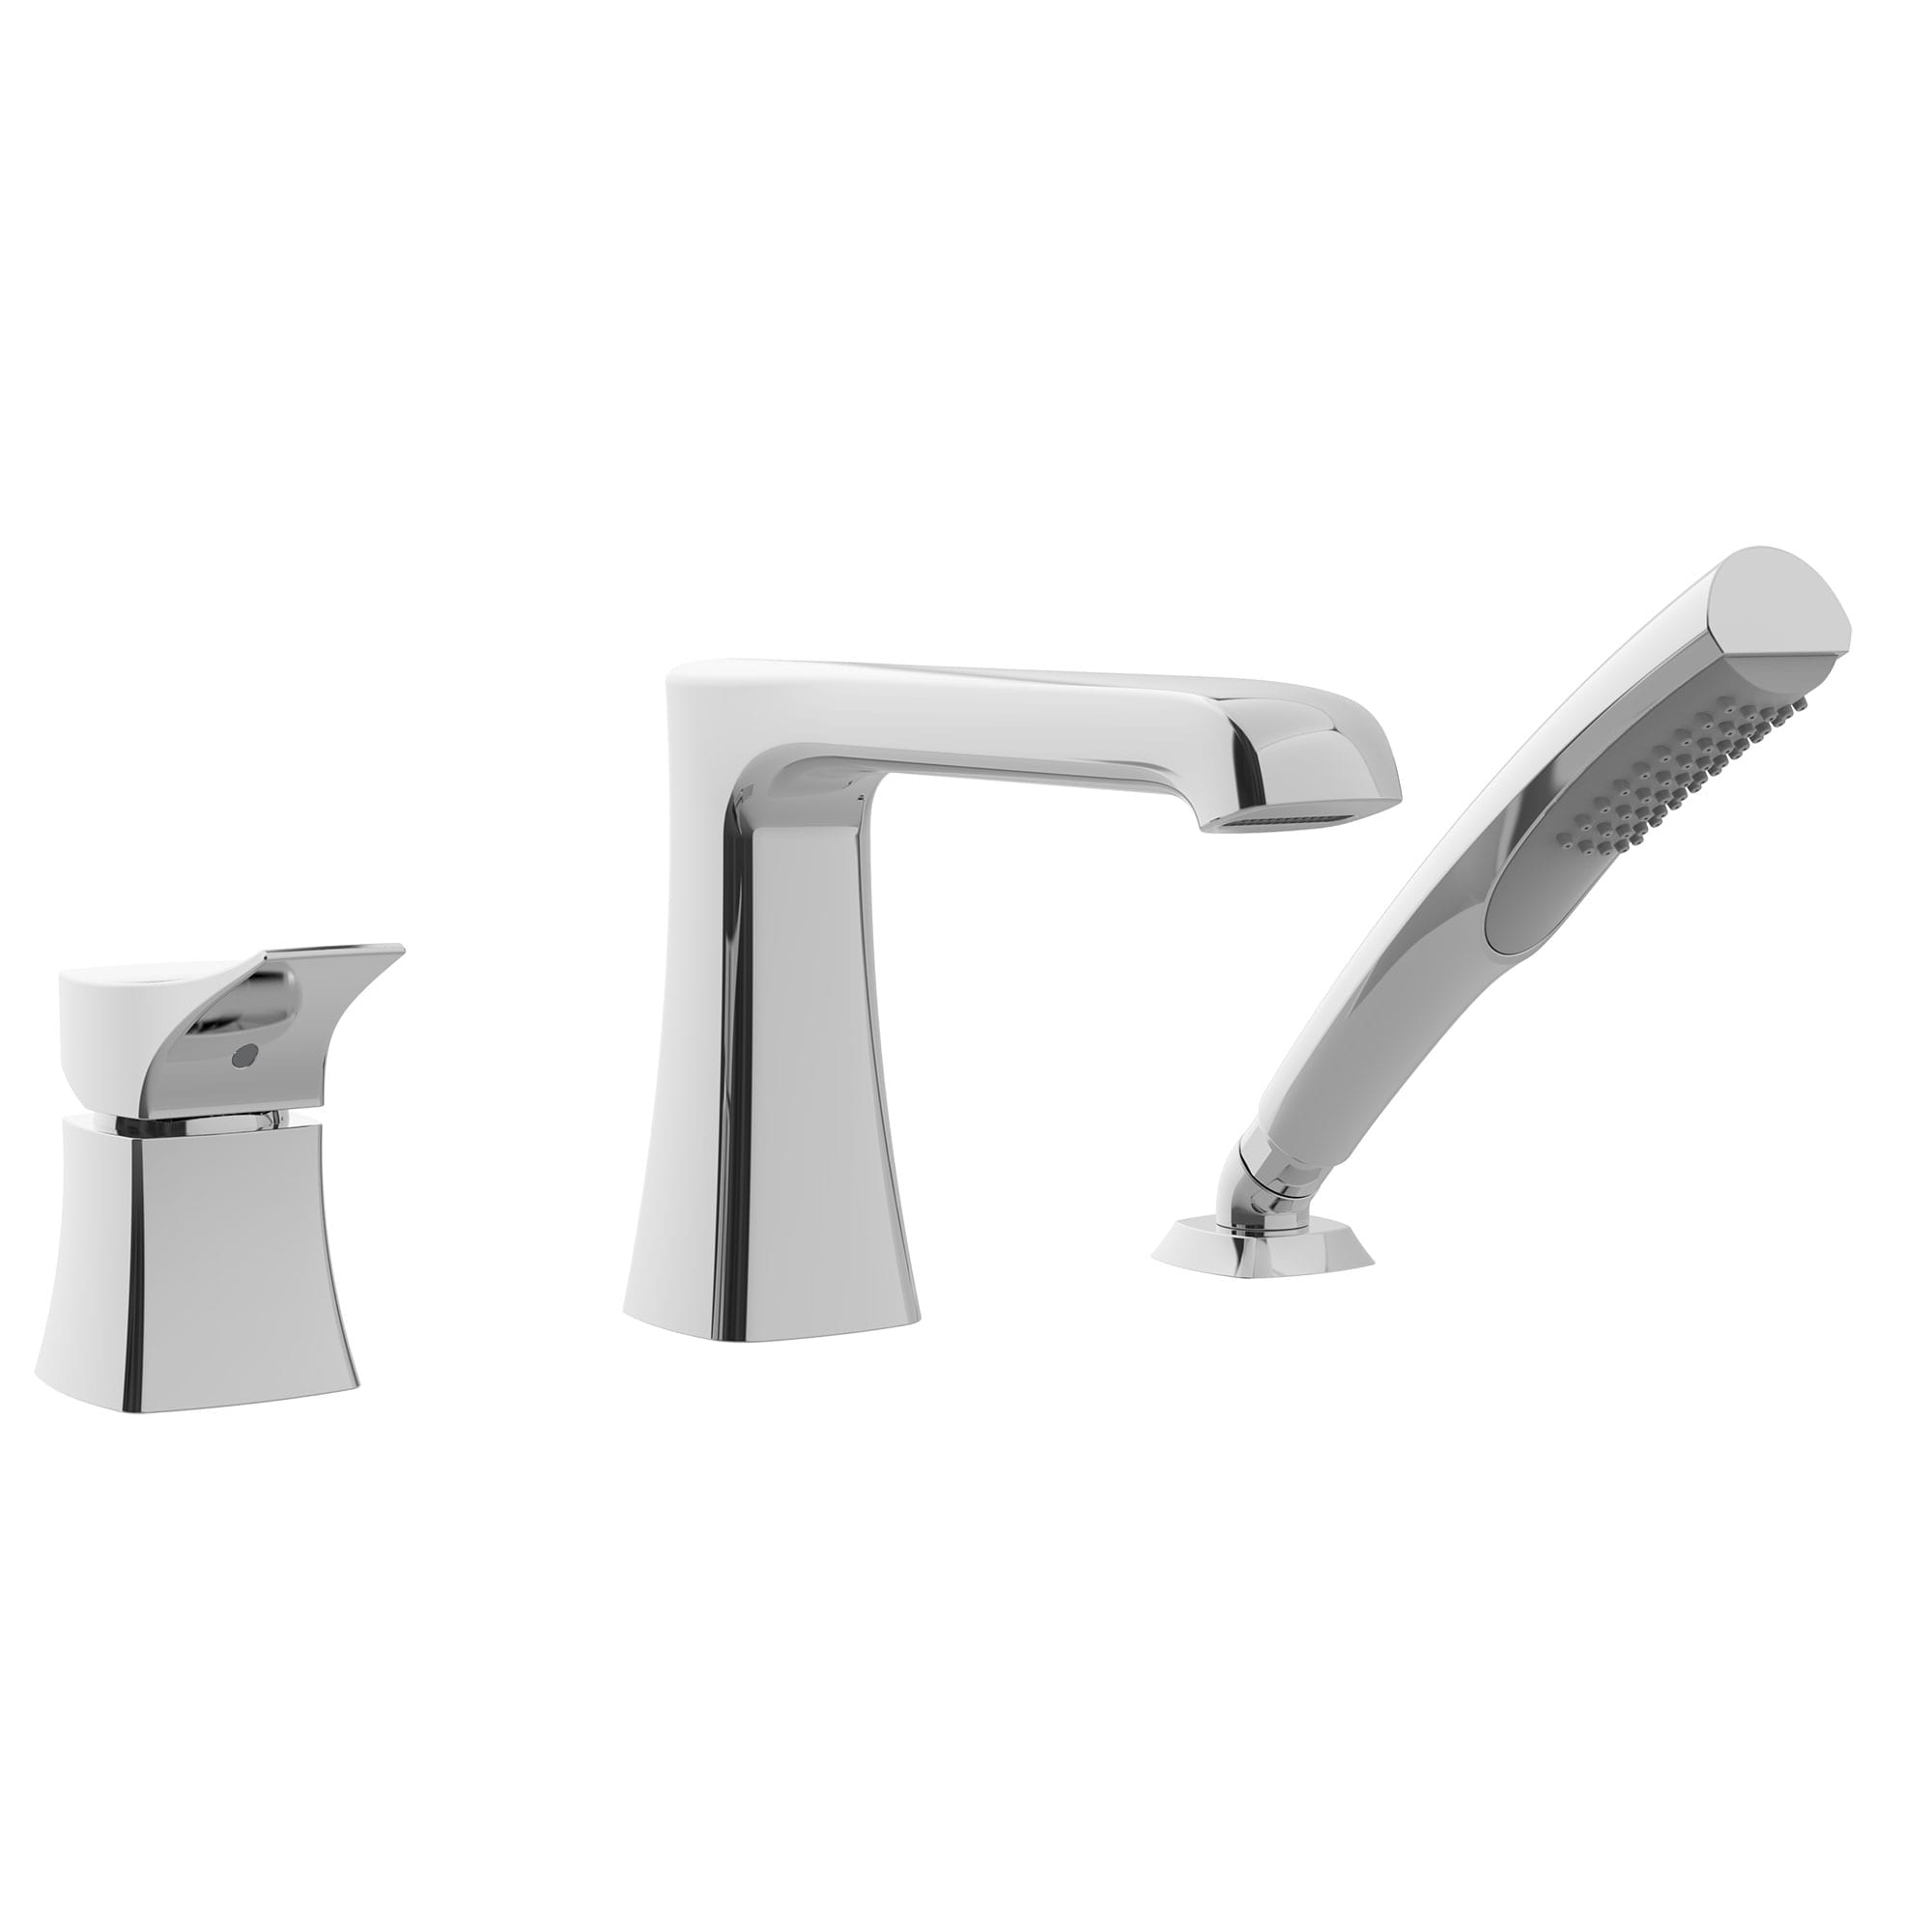 home reviews kohler faucet bn bathtub improvement wayfair hole cp k fairfax pdx bathroom